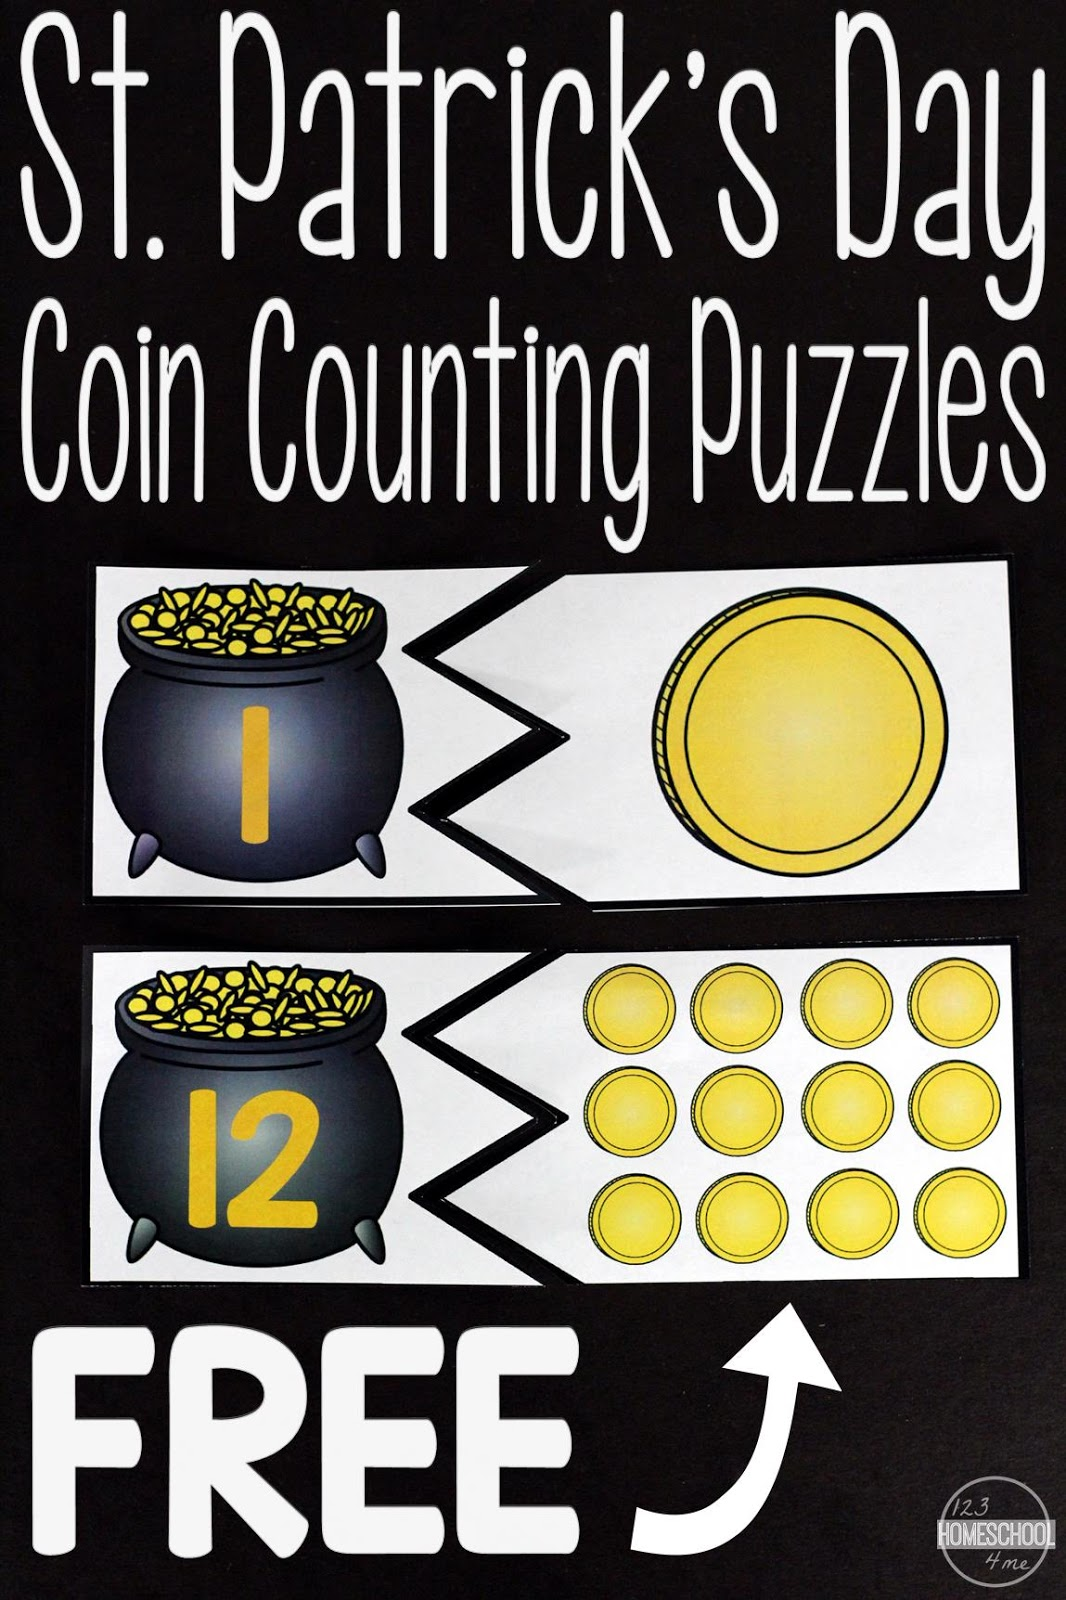 Free St Patricks Day Counting Puzzles 1 20